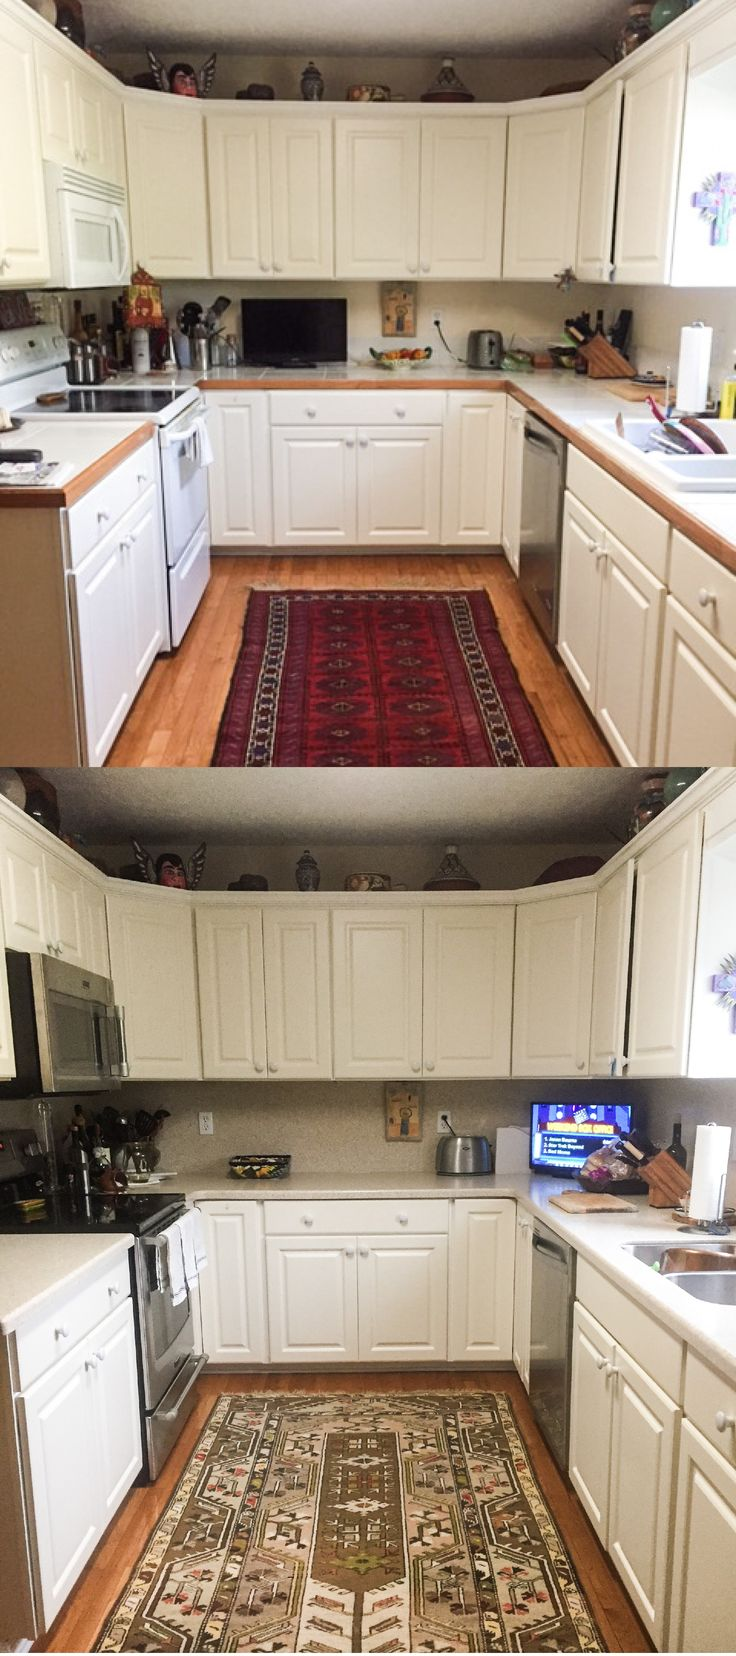 59 best images about Kitchens on Pinterest